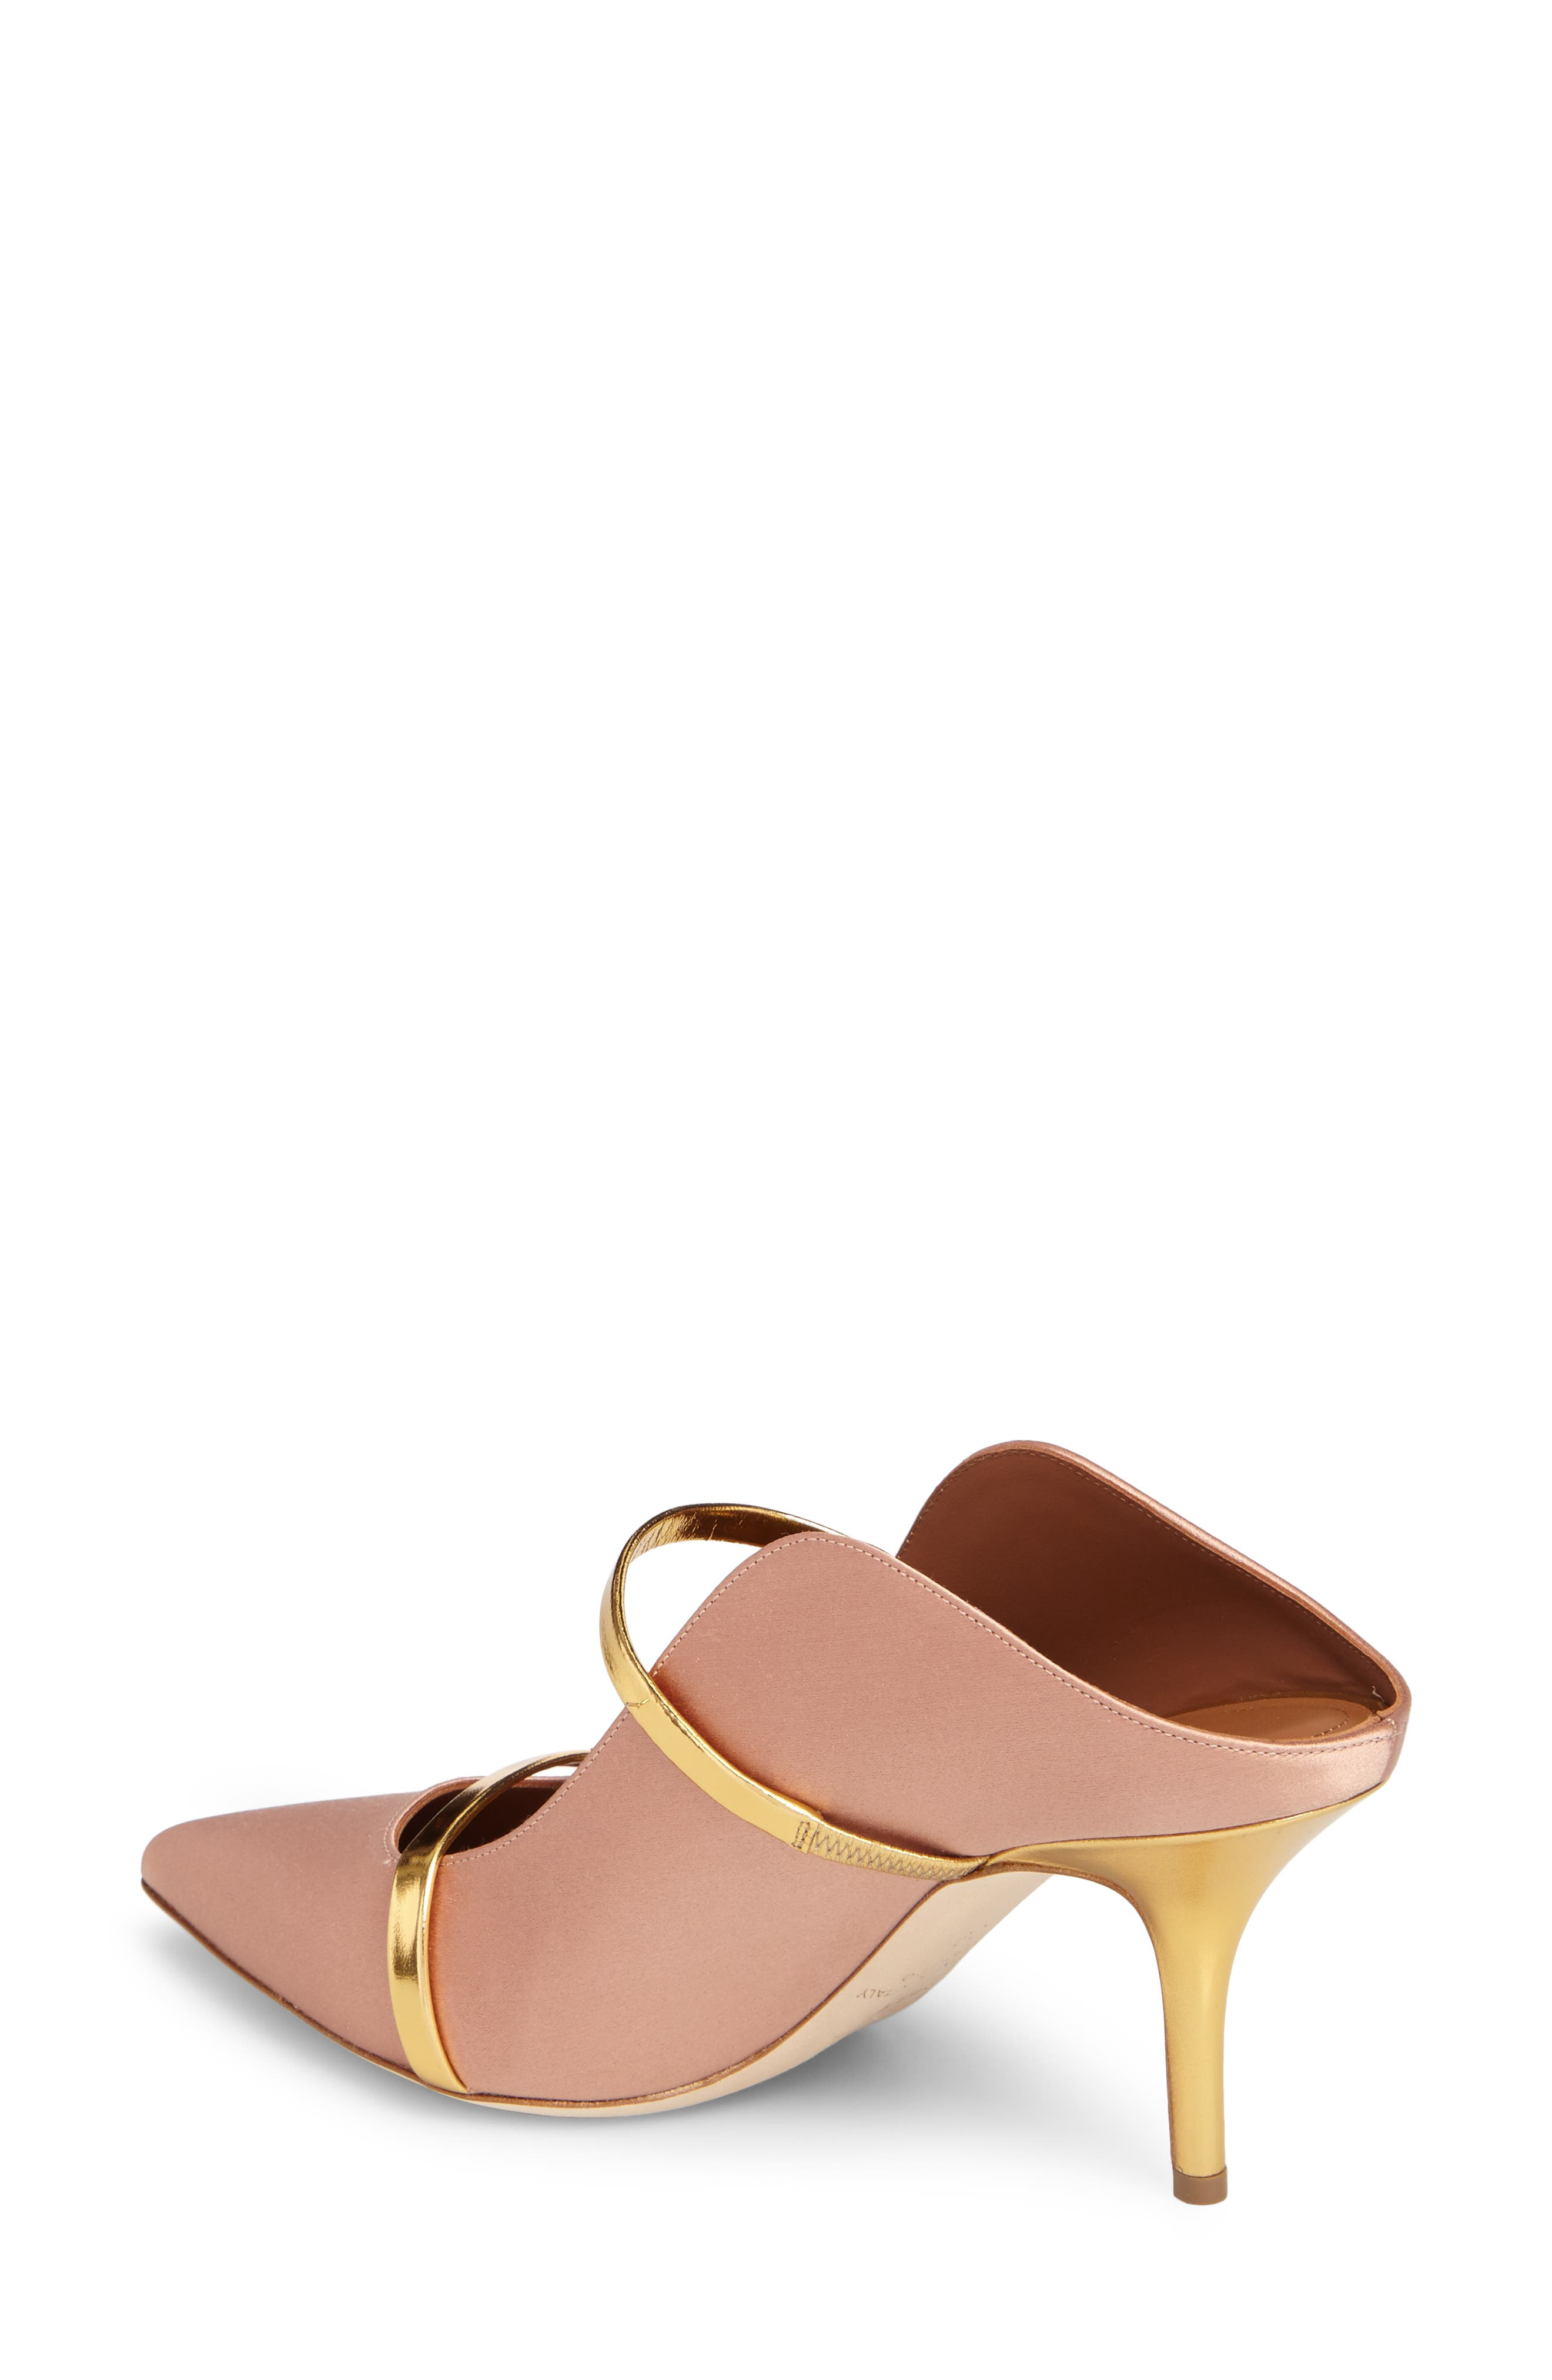 Maureen Double Band Mule,                             Alternate thumbnail 2, color,                             Blush/ Gold